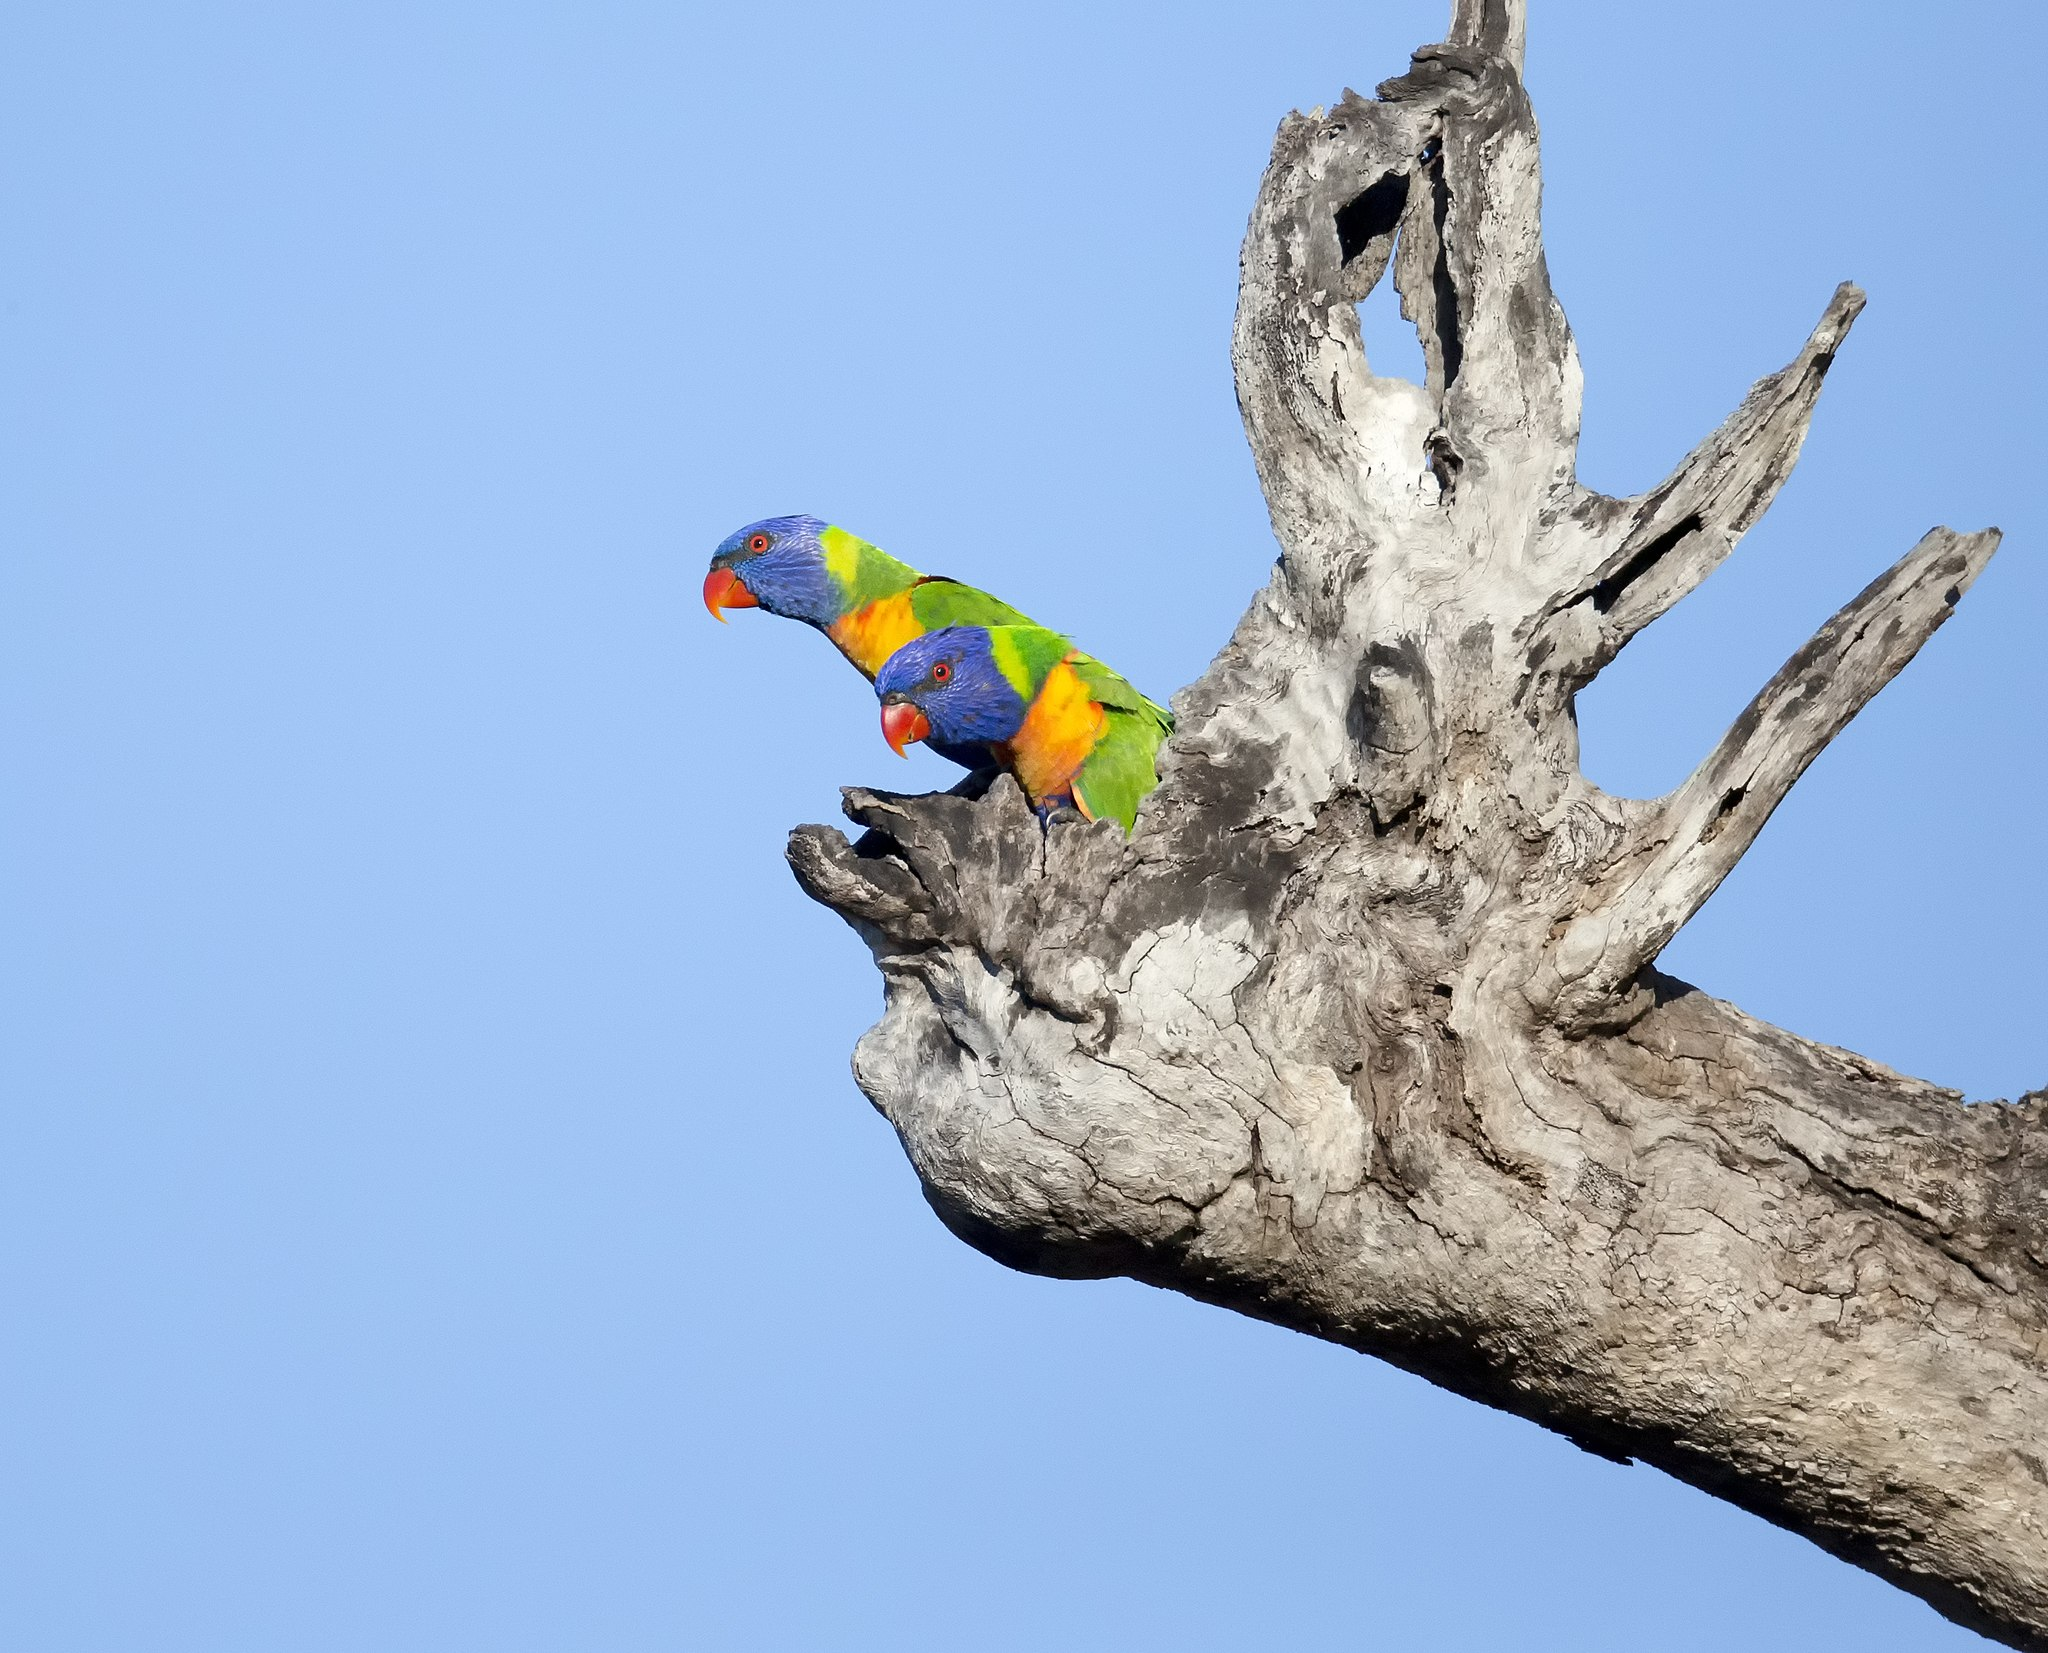 A nesting pair of rainbow lorikeets emerge. They are very pretty birds in the morning light